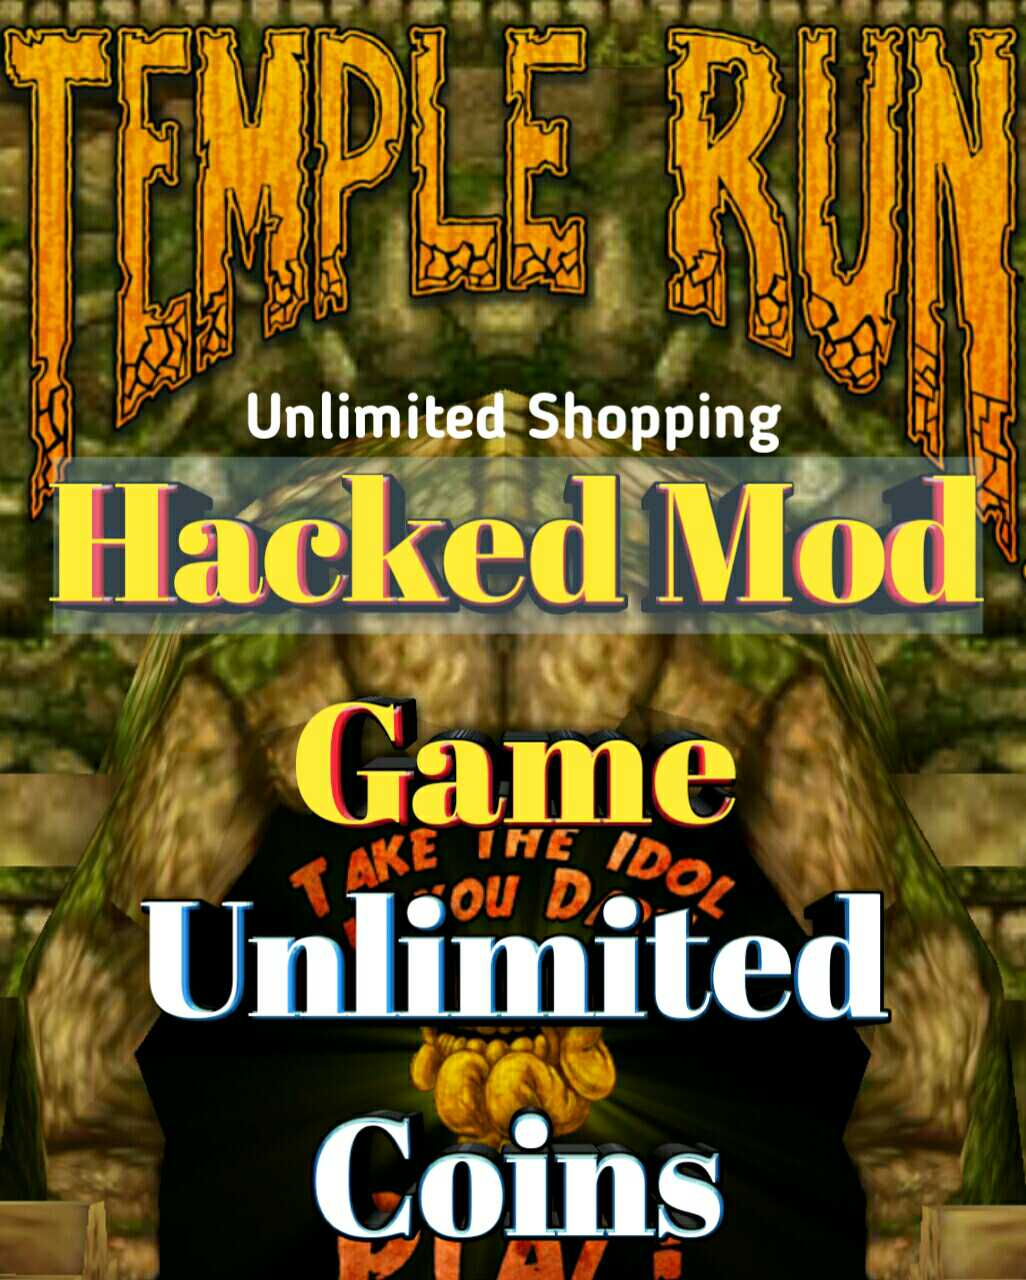 Temple run mod hacked game apk unlimited coins